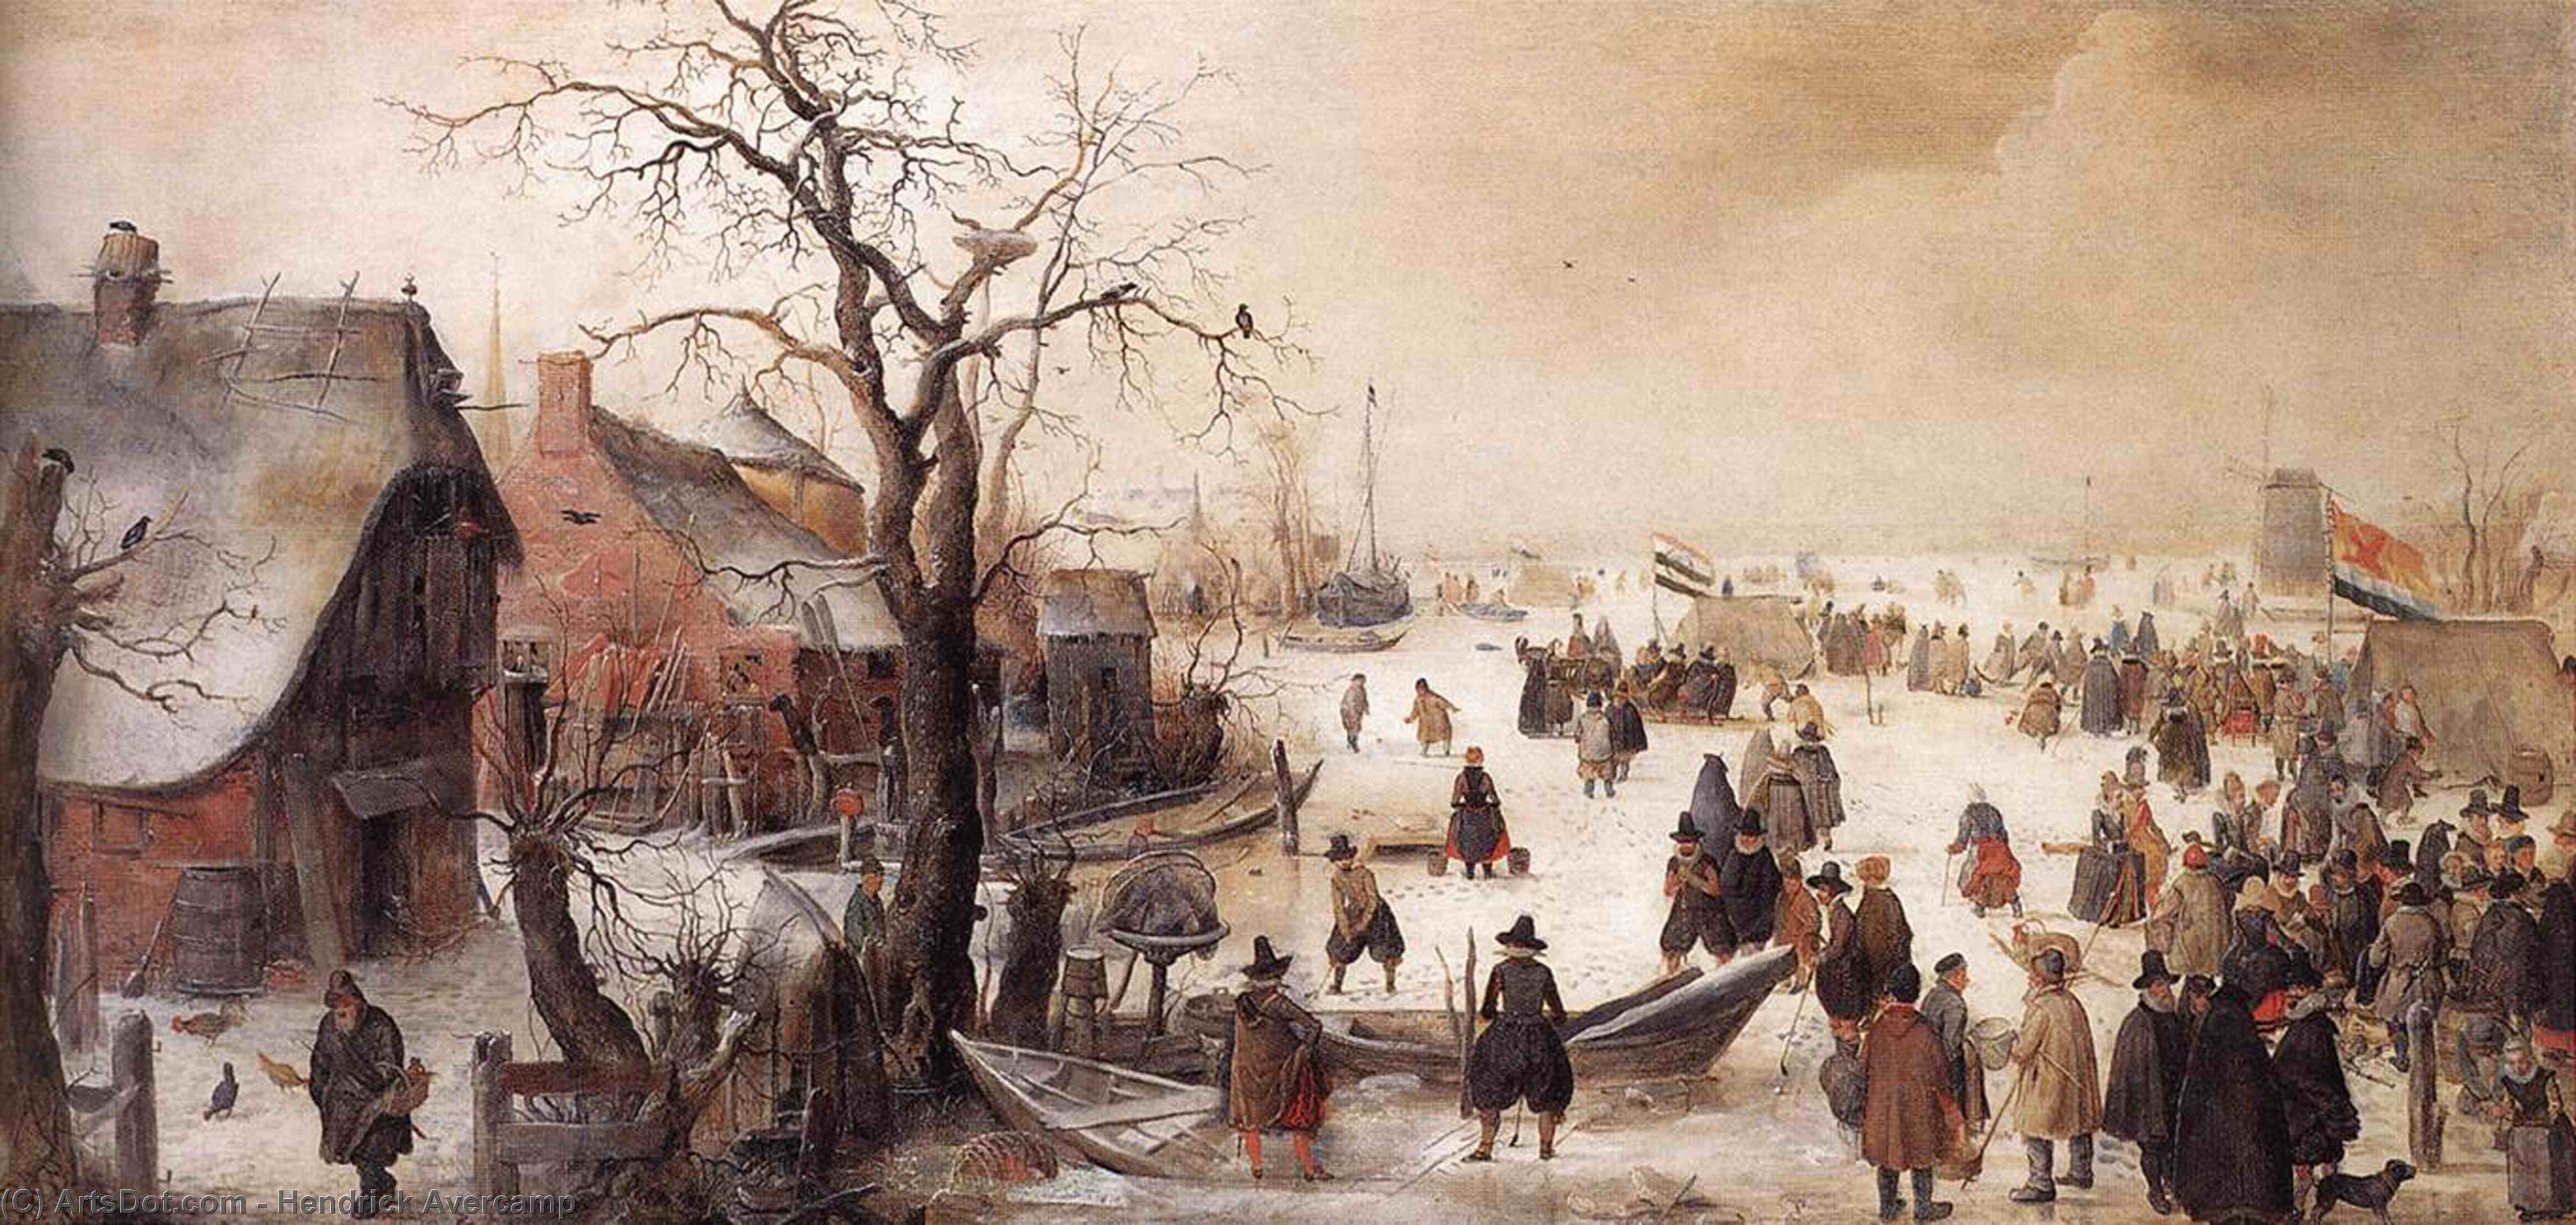 Wikioo.org - The Encyclopedia of Fine Arts - Painting, Artwork by Hendrick Avercamp - Winter Scene on a Canal